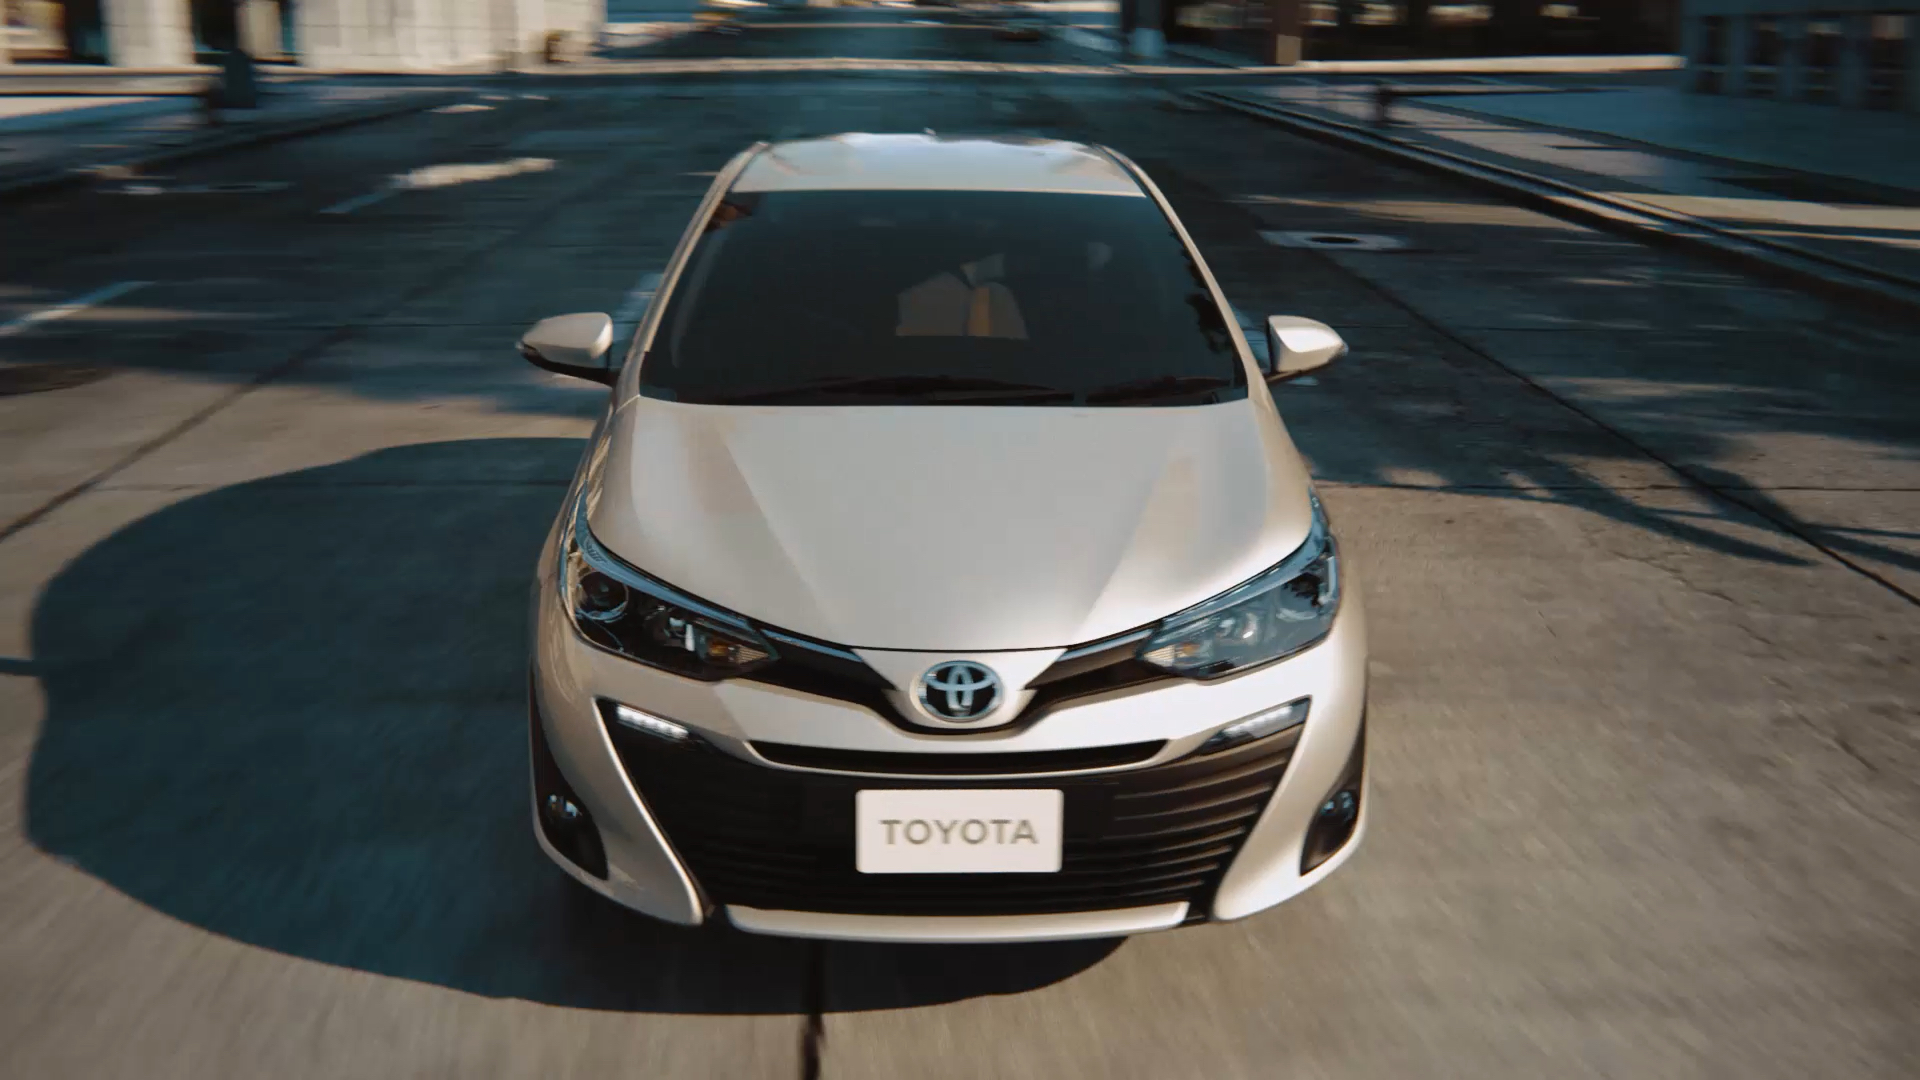 TOYOTA Yaris Sedan Expand the future